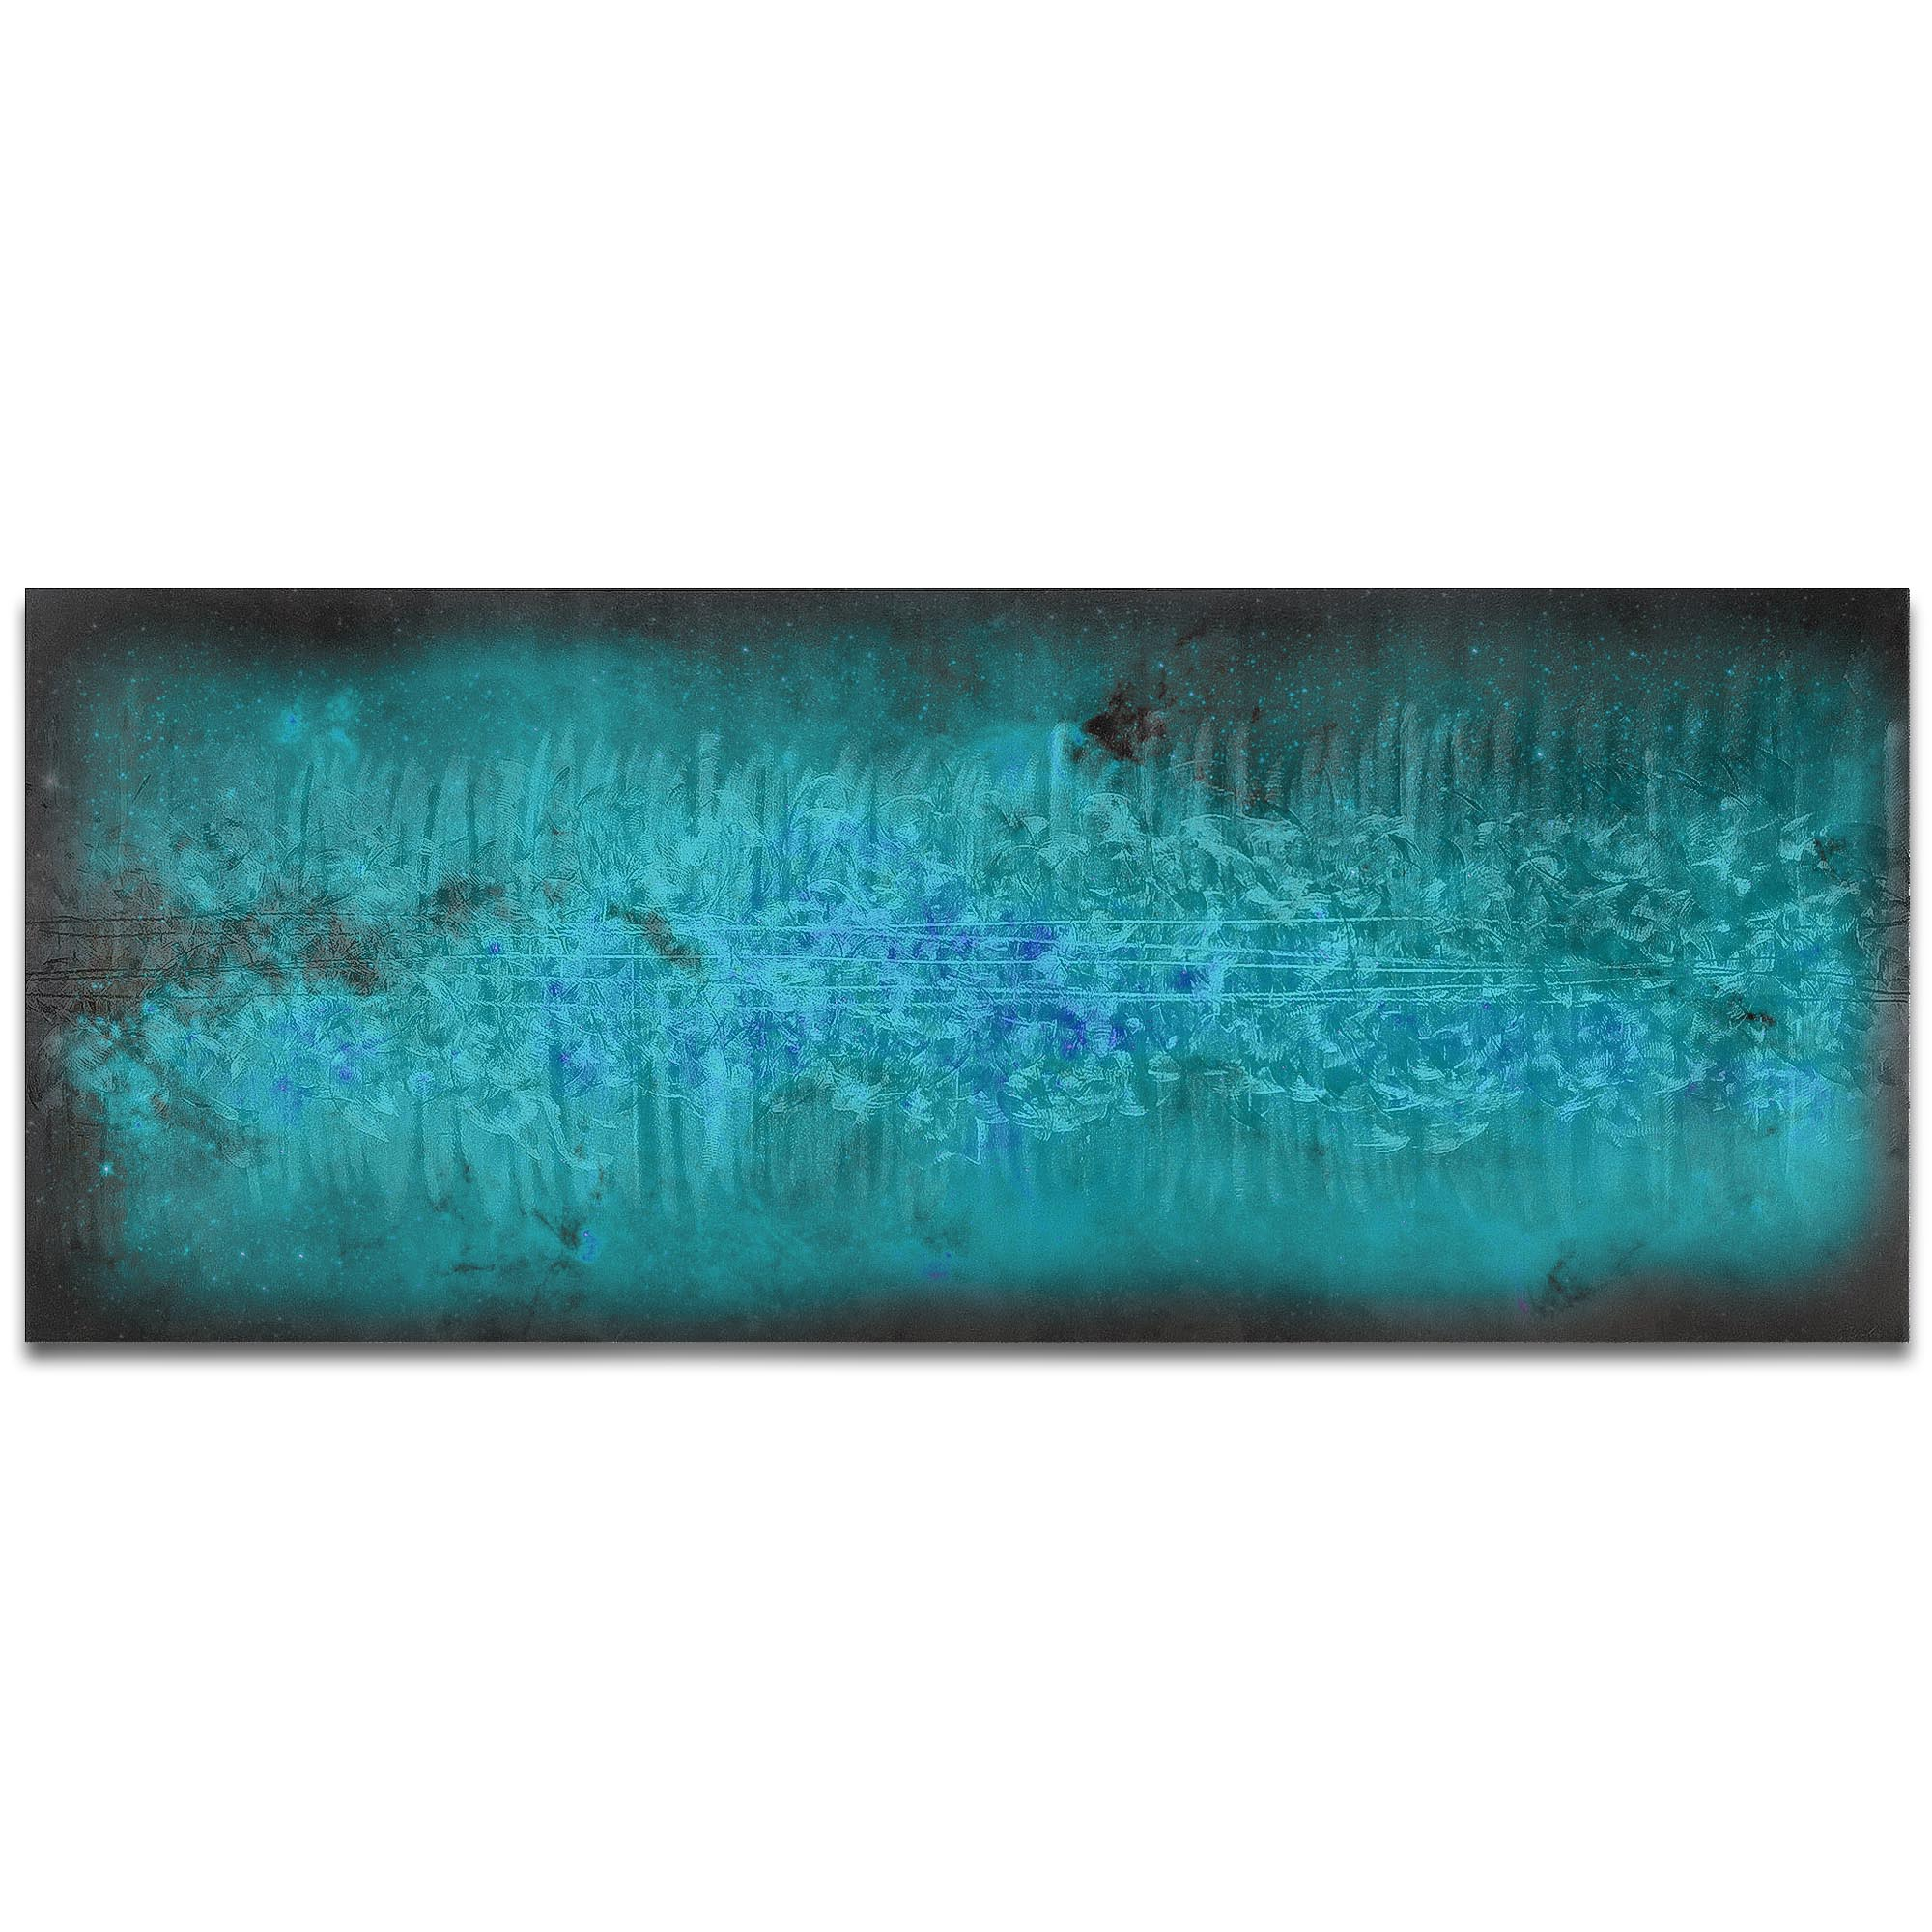 Helena Martin 'Milky Way Static' 60in x 24in Original Abstract Art on Ground and Colored Metal